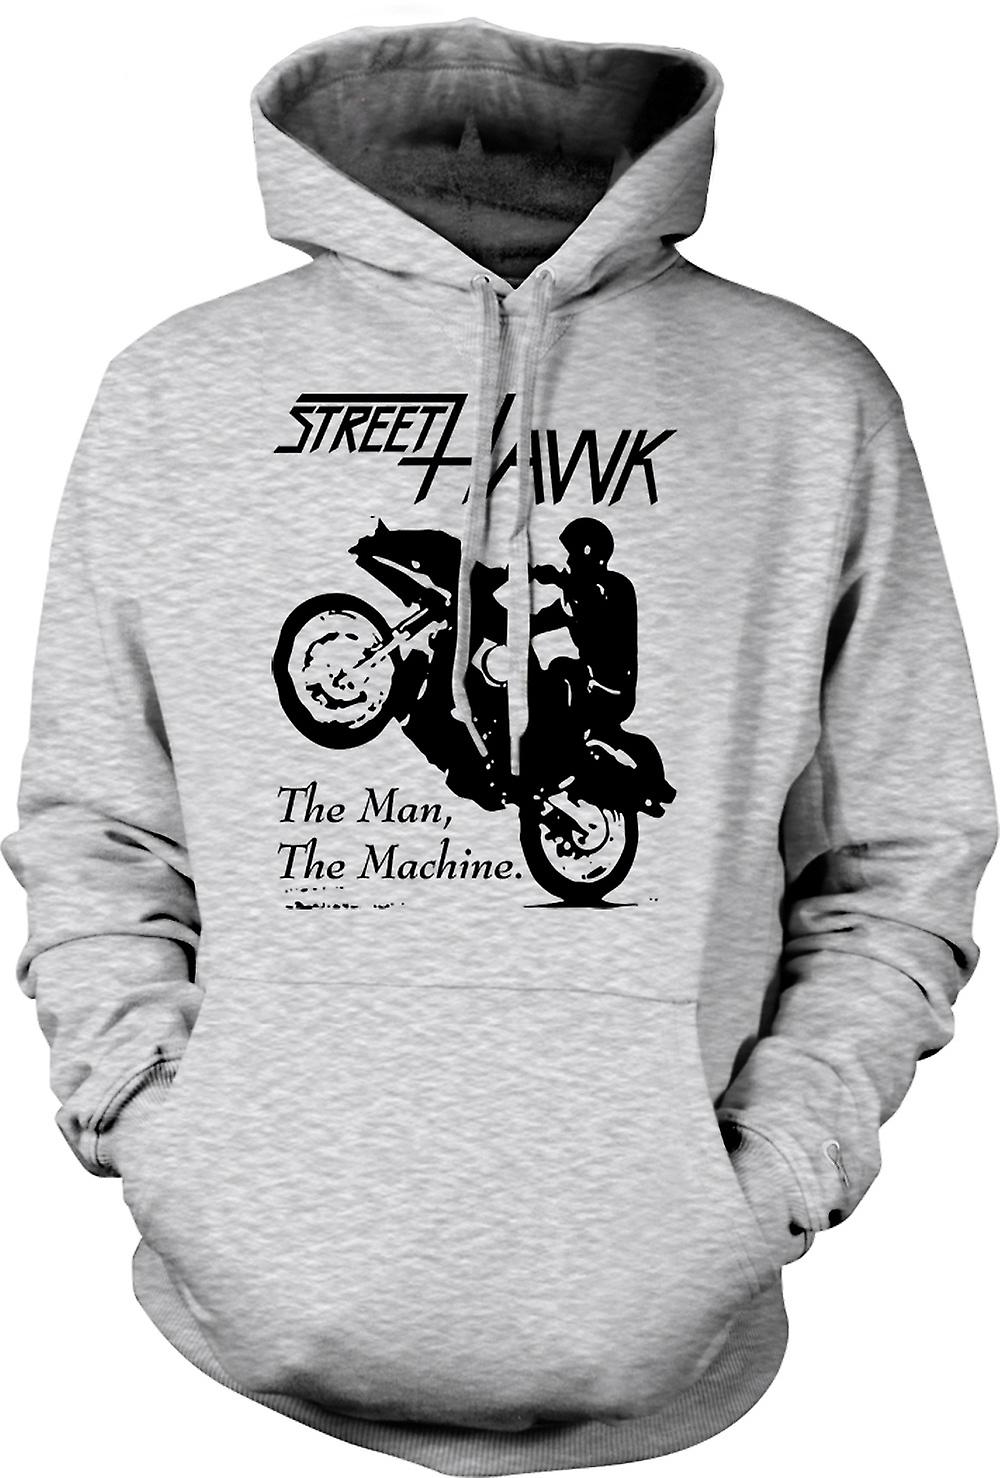 Mens Hoodie - Street Hawk - Bike - Crime Fighter